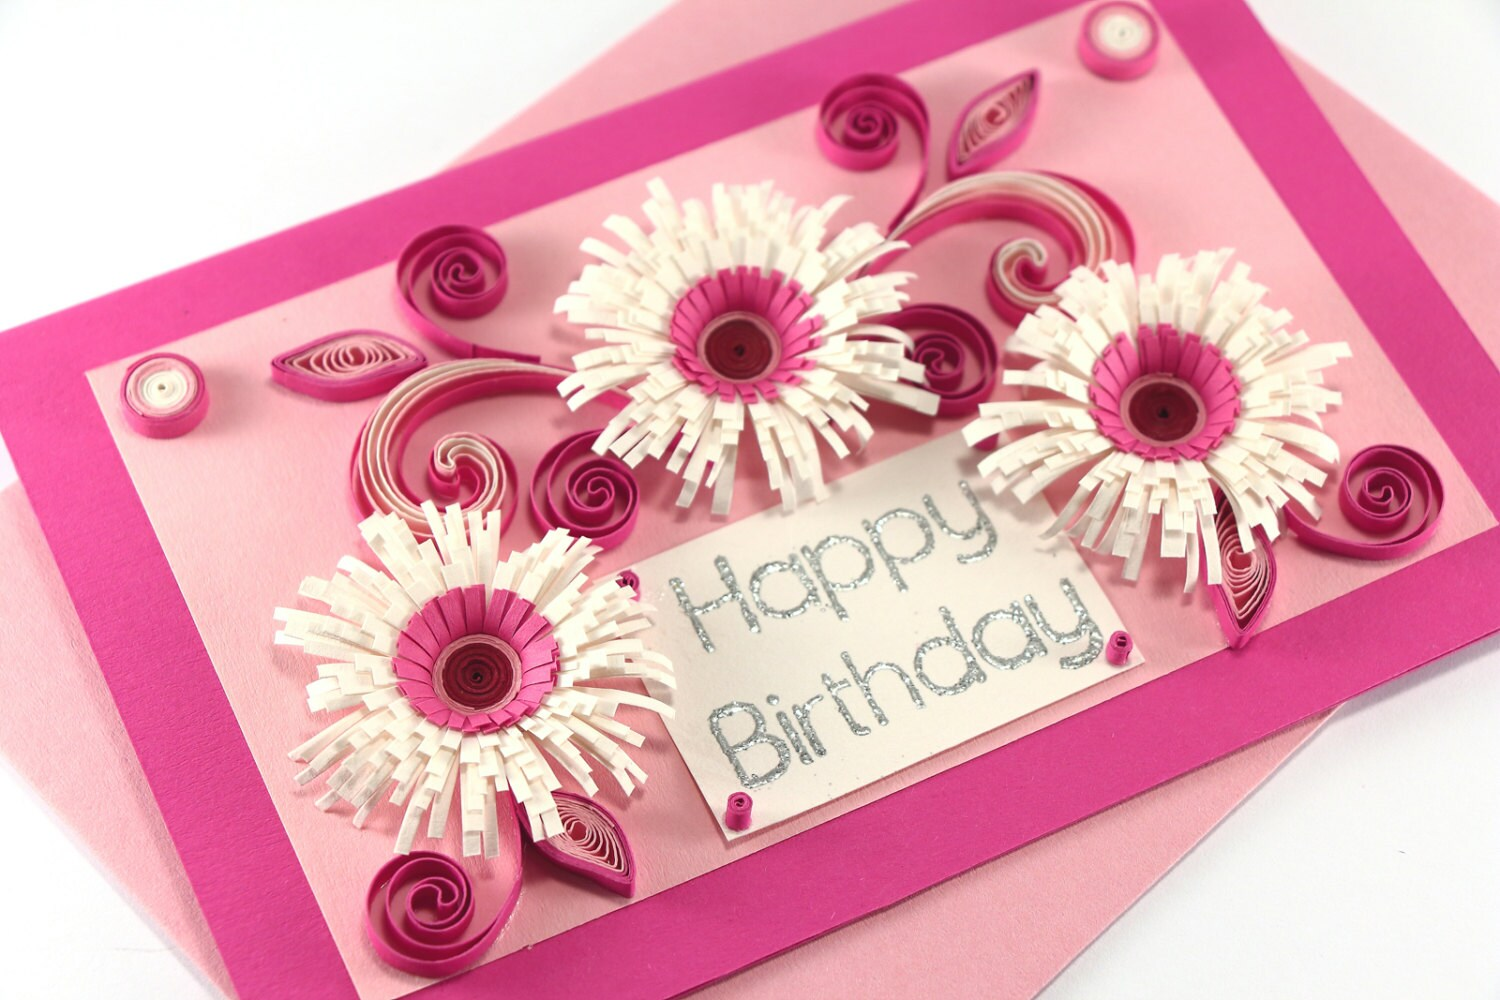 Handmade greeting cards quilling cards christmas note card template happy birthday card mom birthday card girlfriend birthday il fullxfull happy birthday card mom birthday card handmade greeting cards quilling cards kristyandbryce Image collections